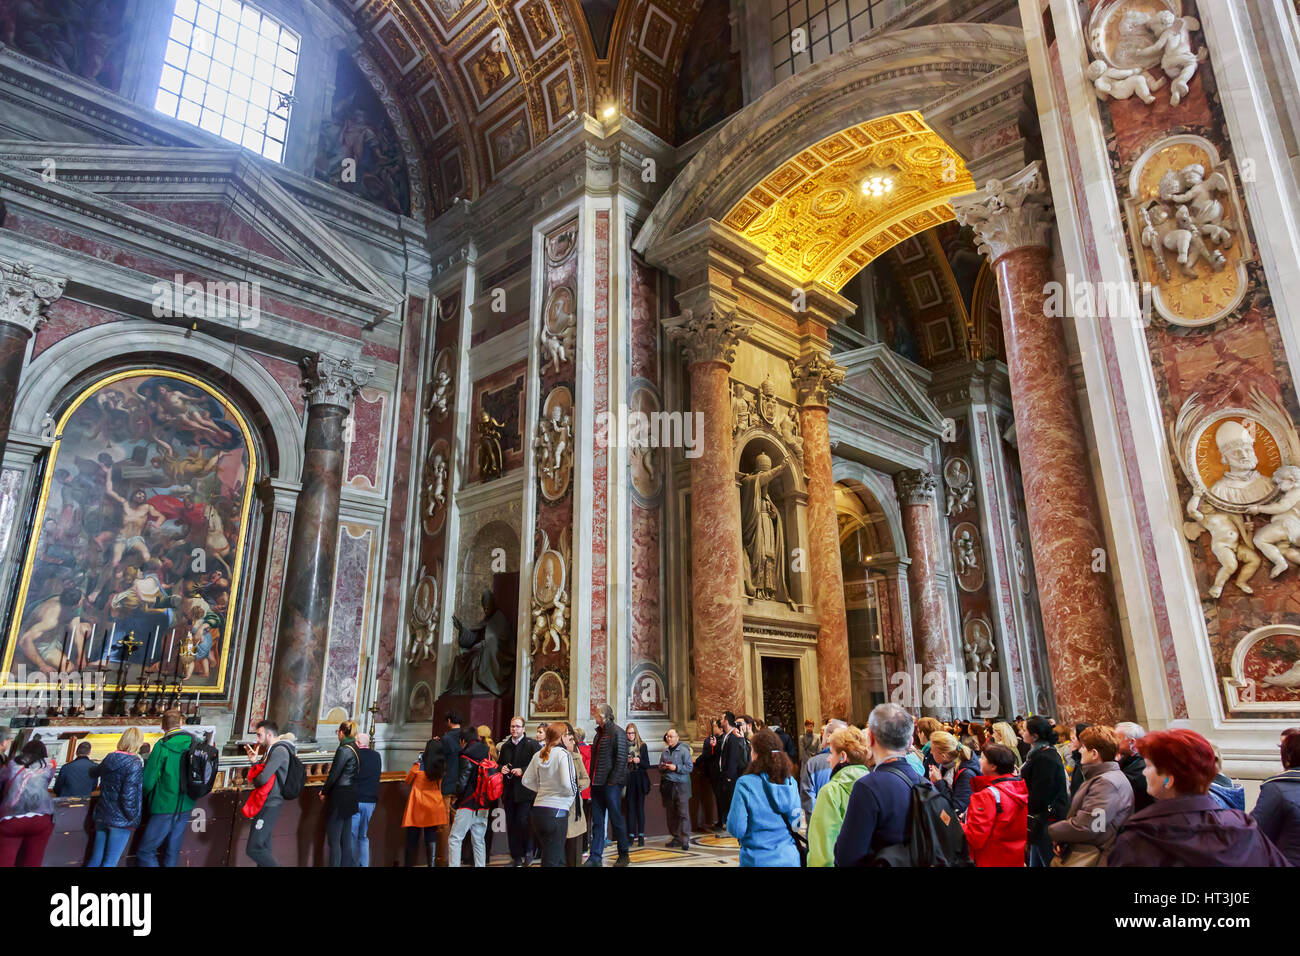 Detail within the Basilica of St Peter, Vatican City, Rome, Italy - Stock Image